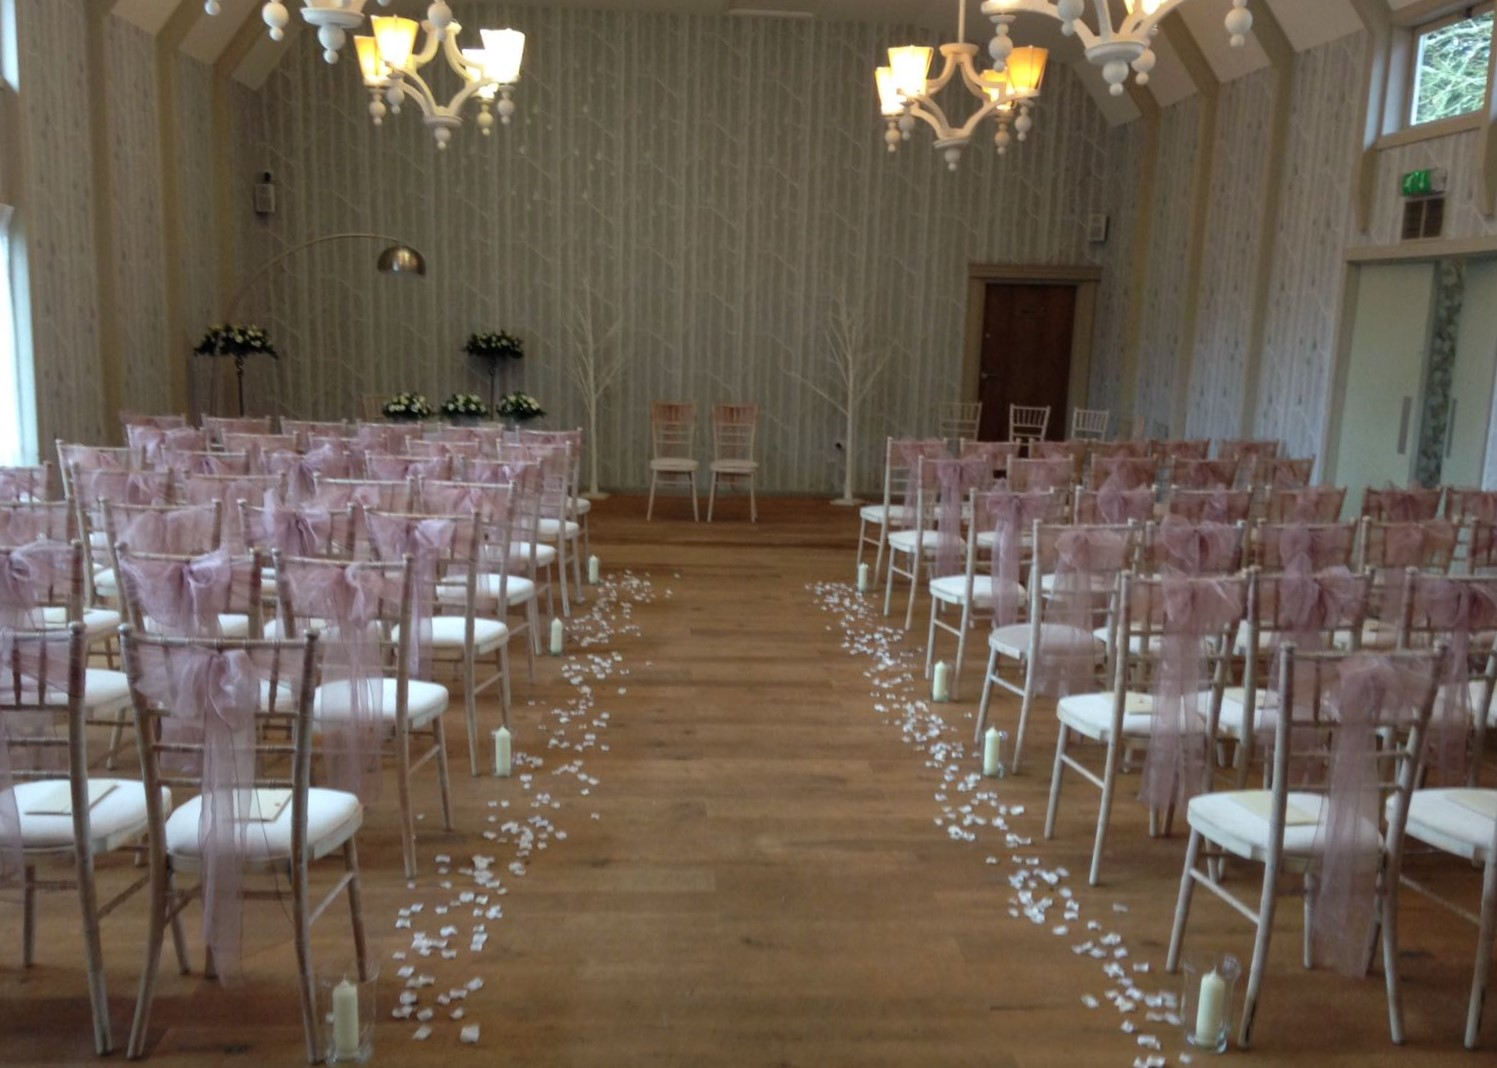 Petals & candles down aisle hampton manor